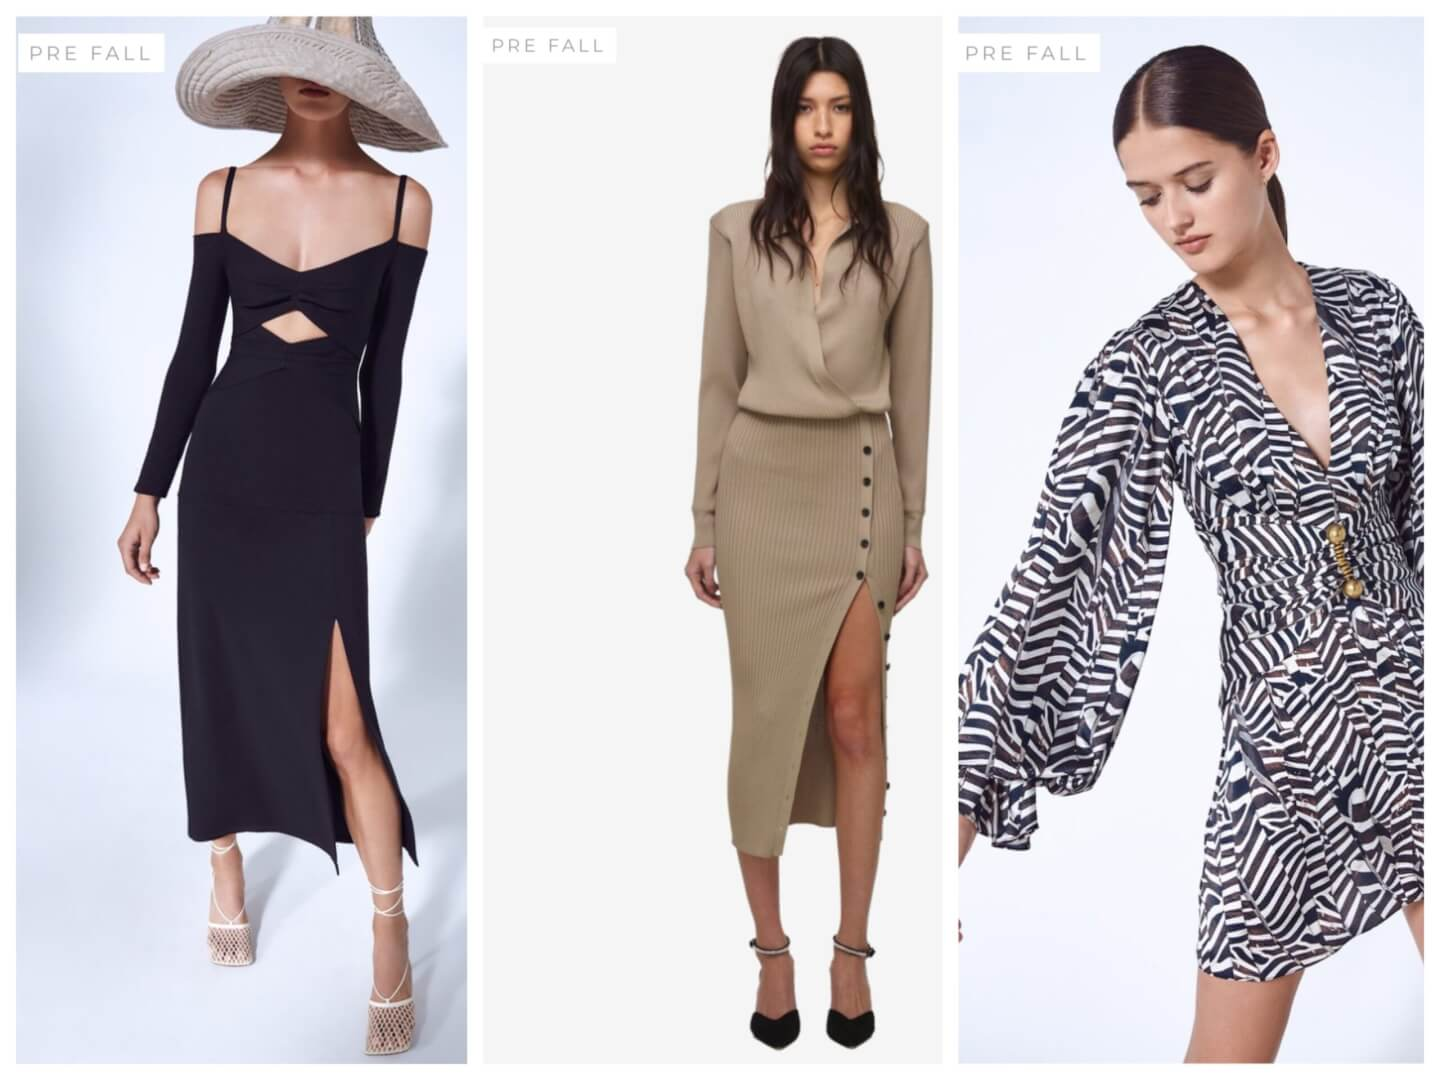 FunkyForty Favourite Shops July'21 Update